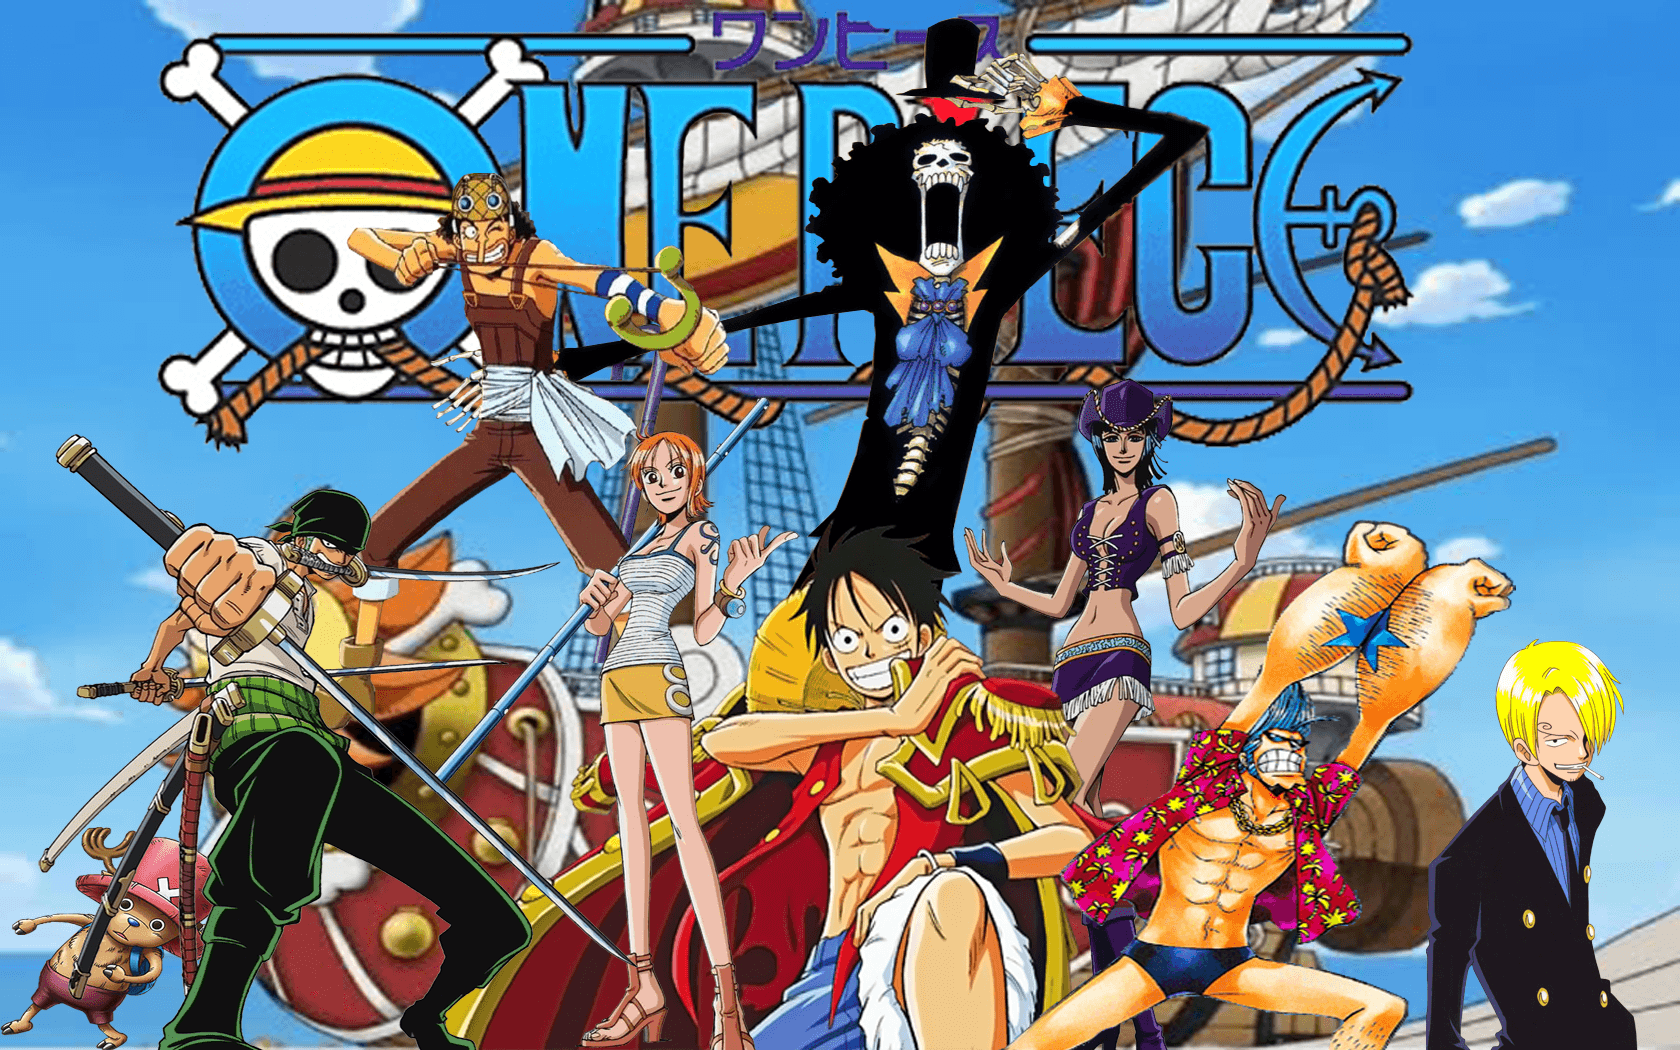 16 Quality One Piece Wallpapers, Anime & Manga